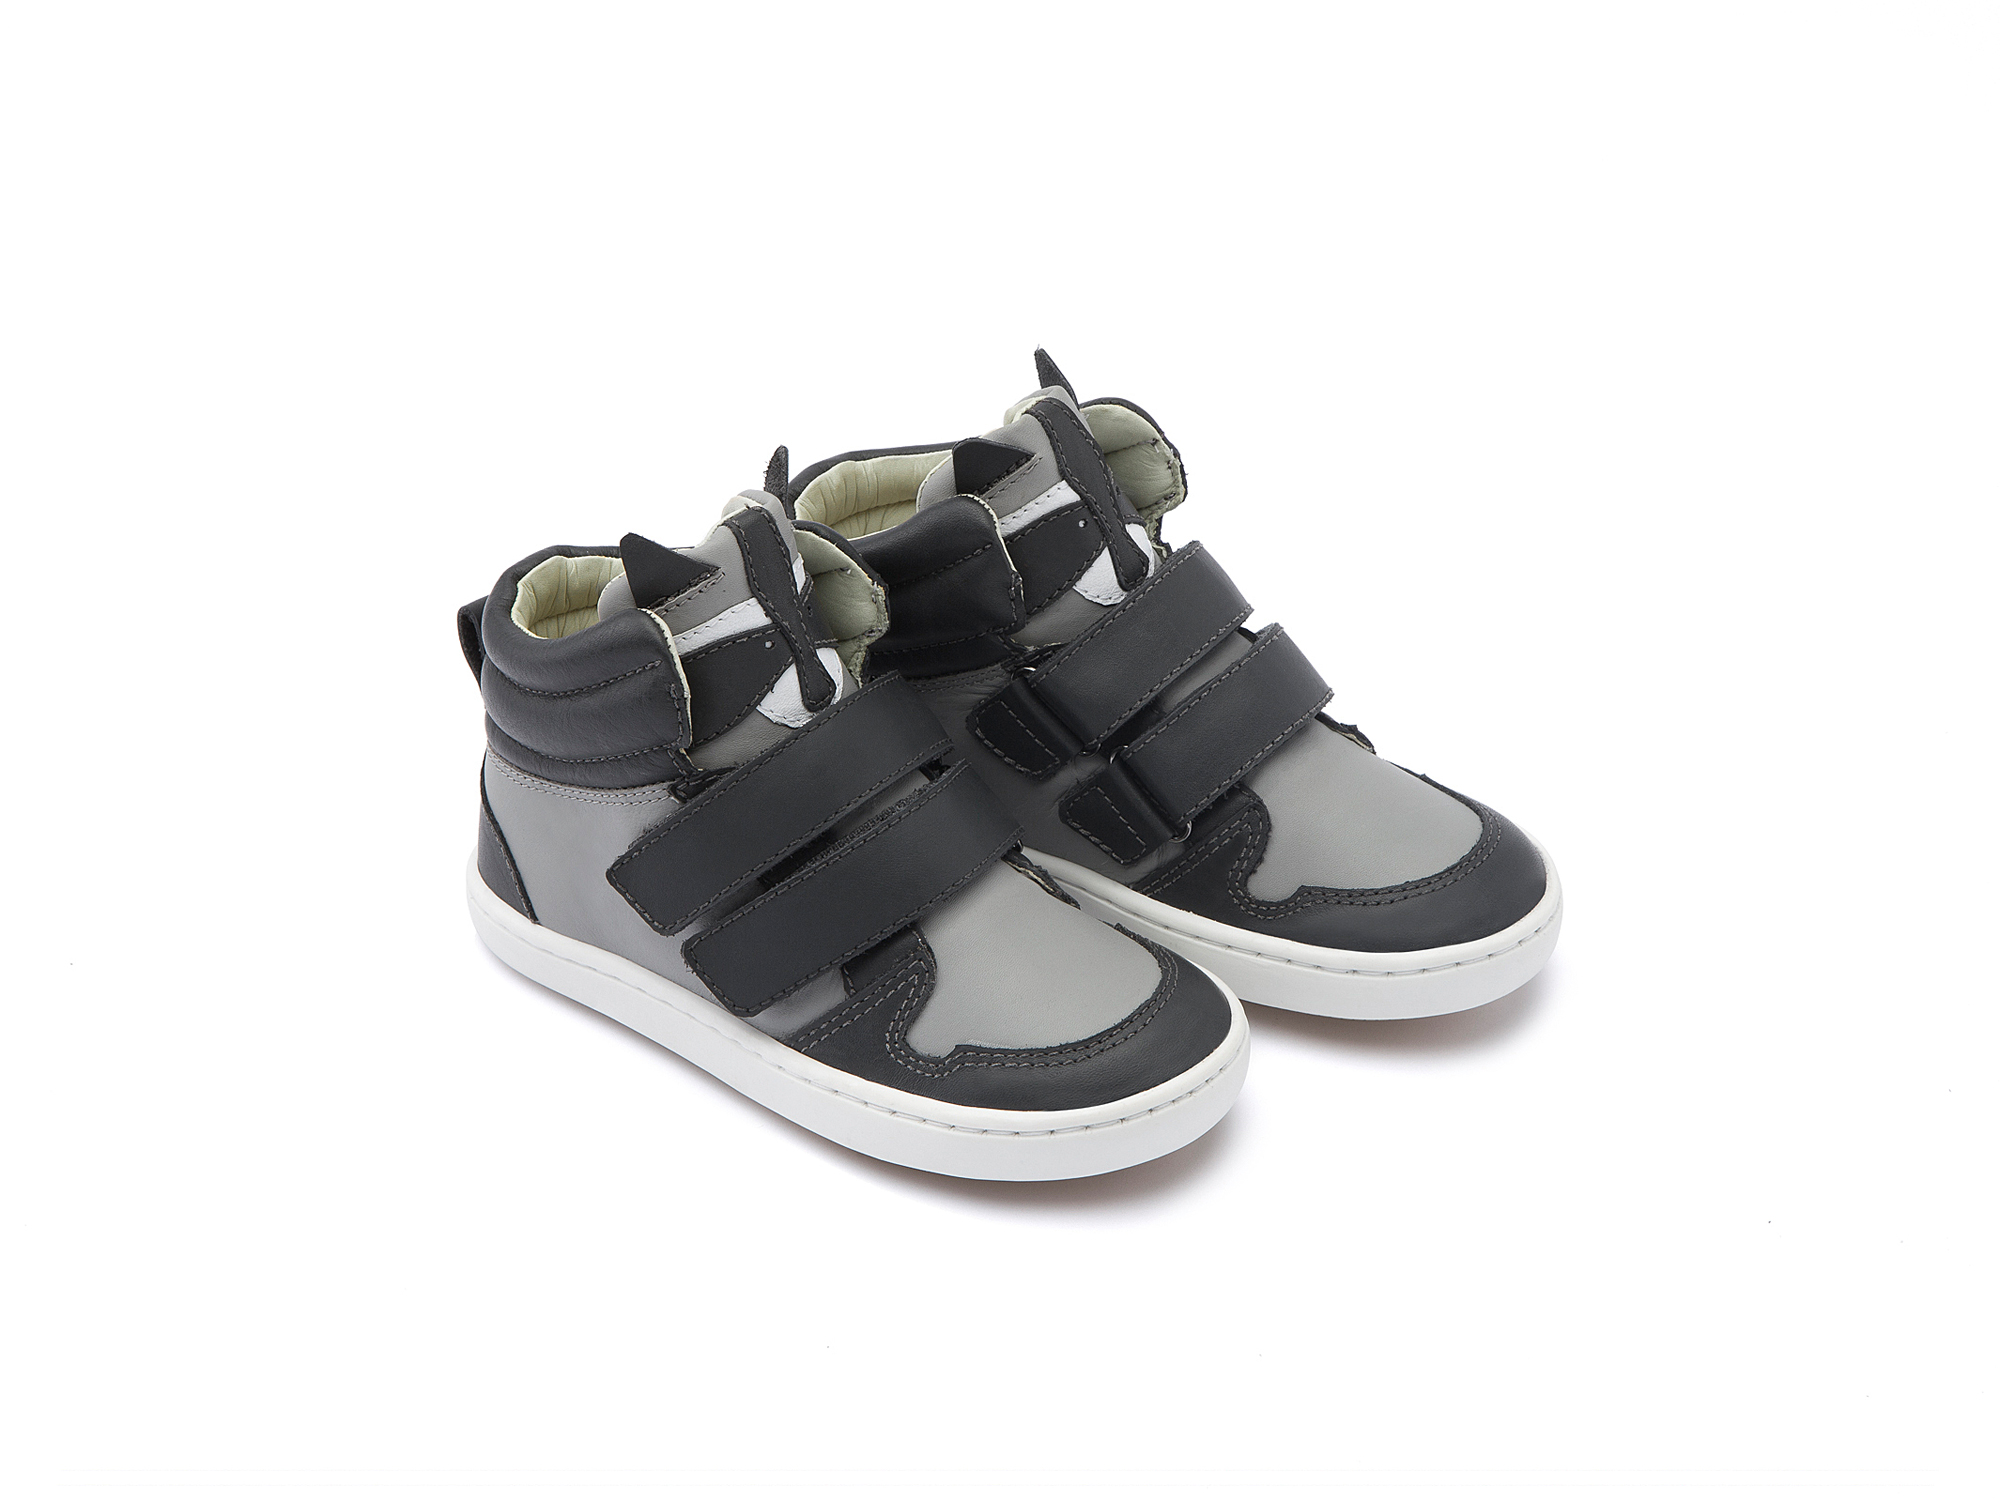 Bota Little Raccoon Ash/ Grey Clay Toddler 2 à 4 anos - 0